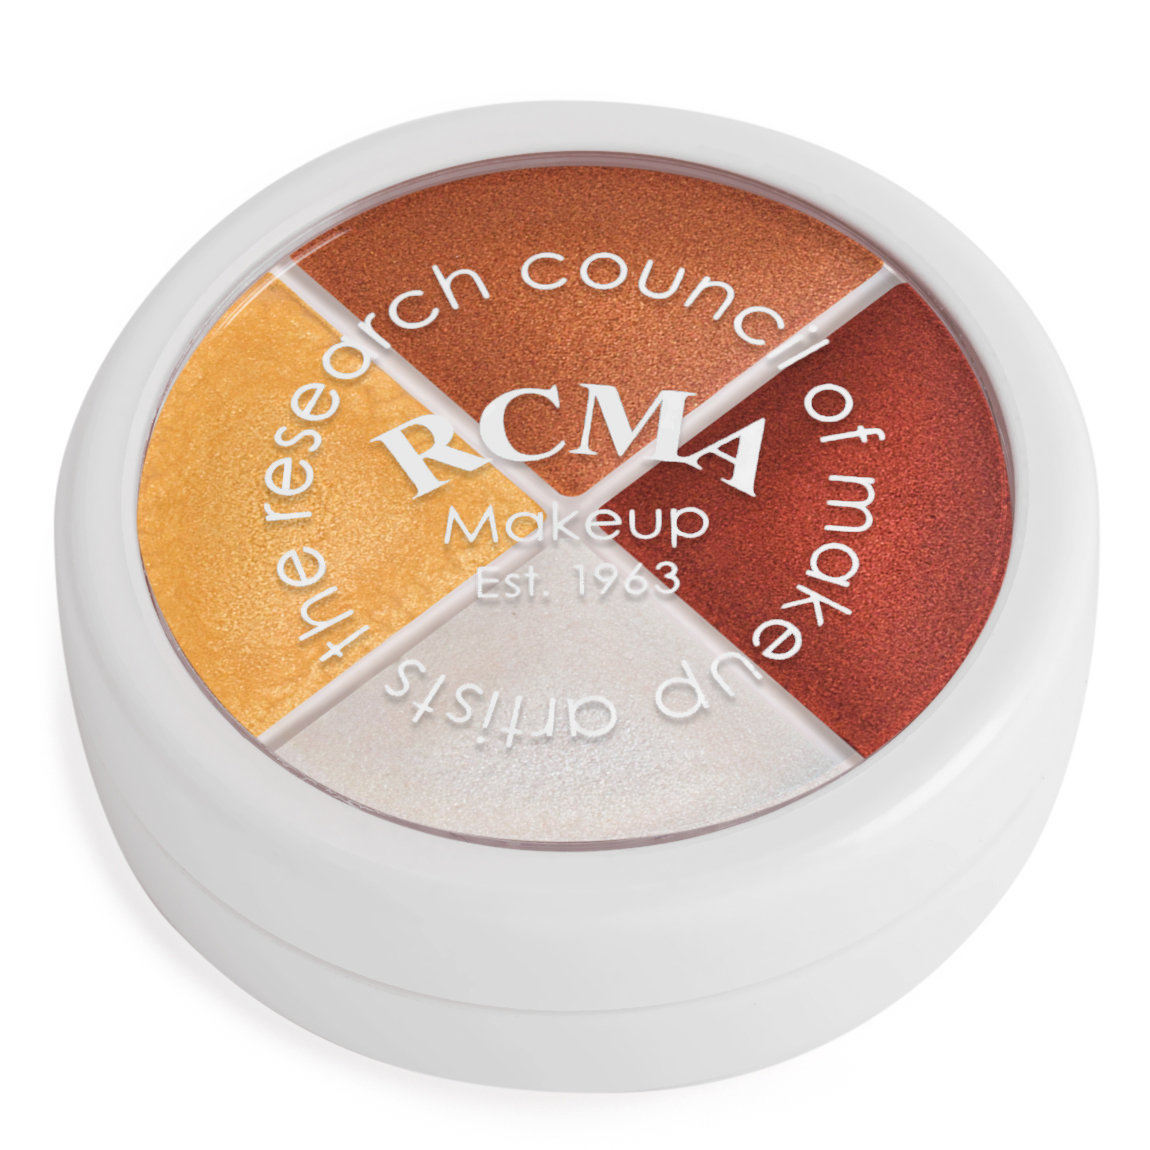 RCMA Makeup 4 Color Kit Sheens alternative view 1.